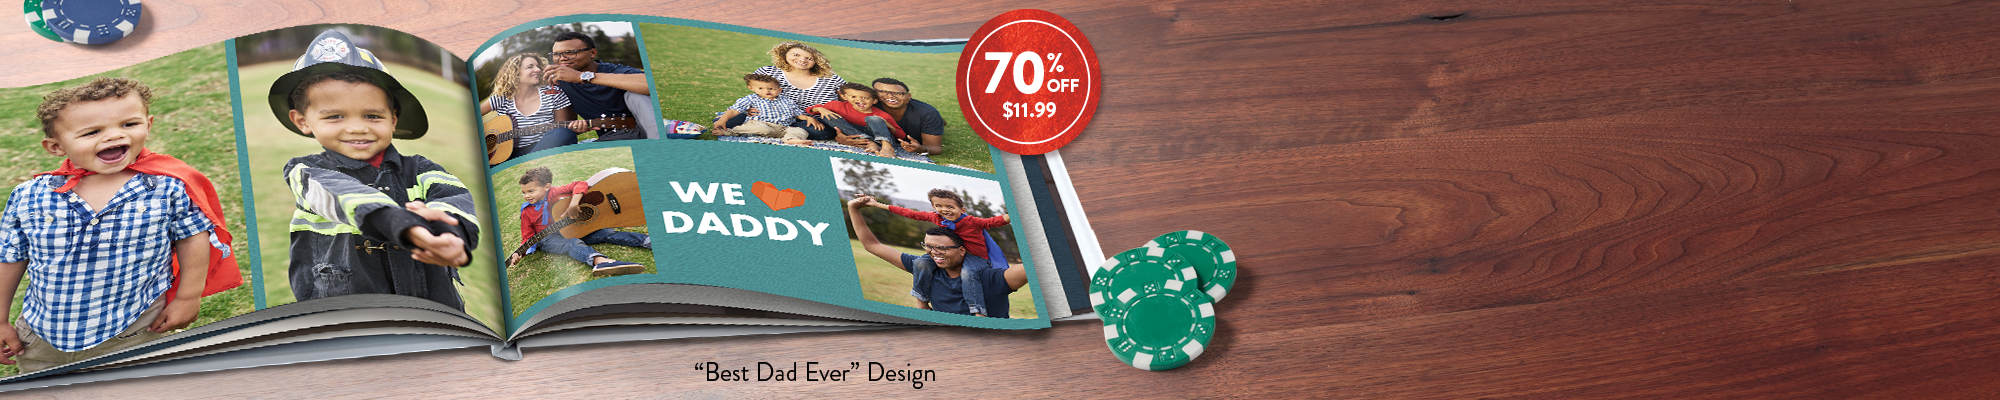 Photo Books Bring home a best seller! Save 70% on our 8x11 Hardcover Photo Book, regularly $39.99, now $11.99! Use code SPRINGBOOK